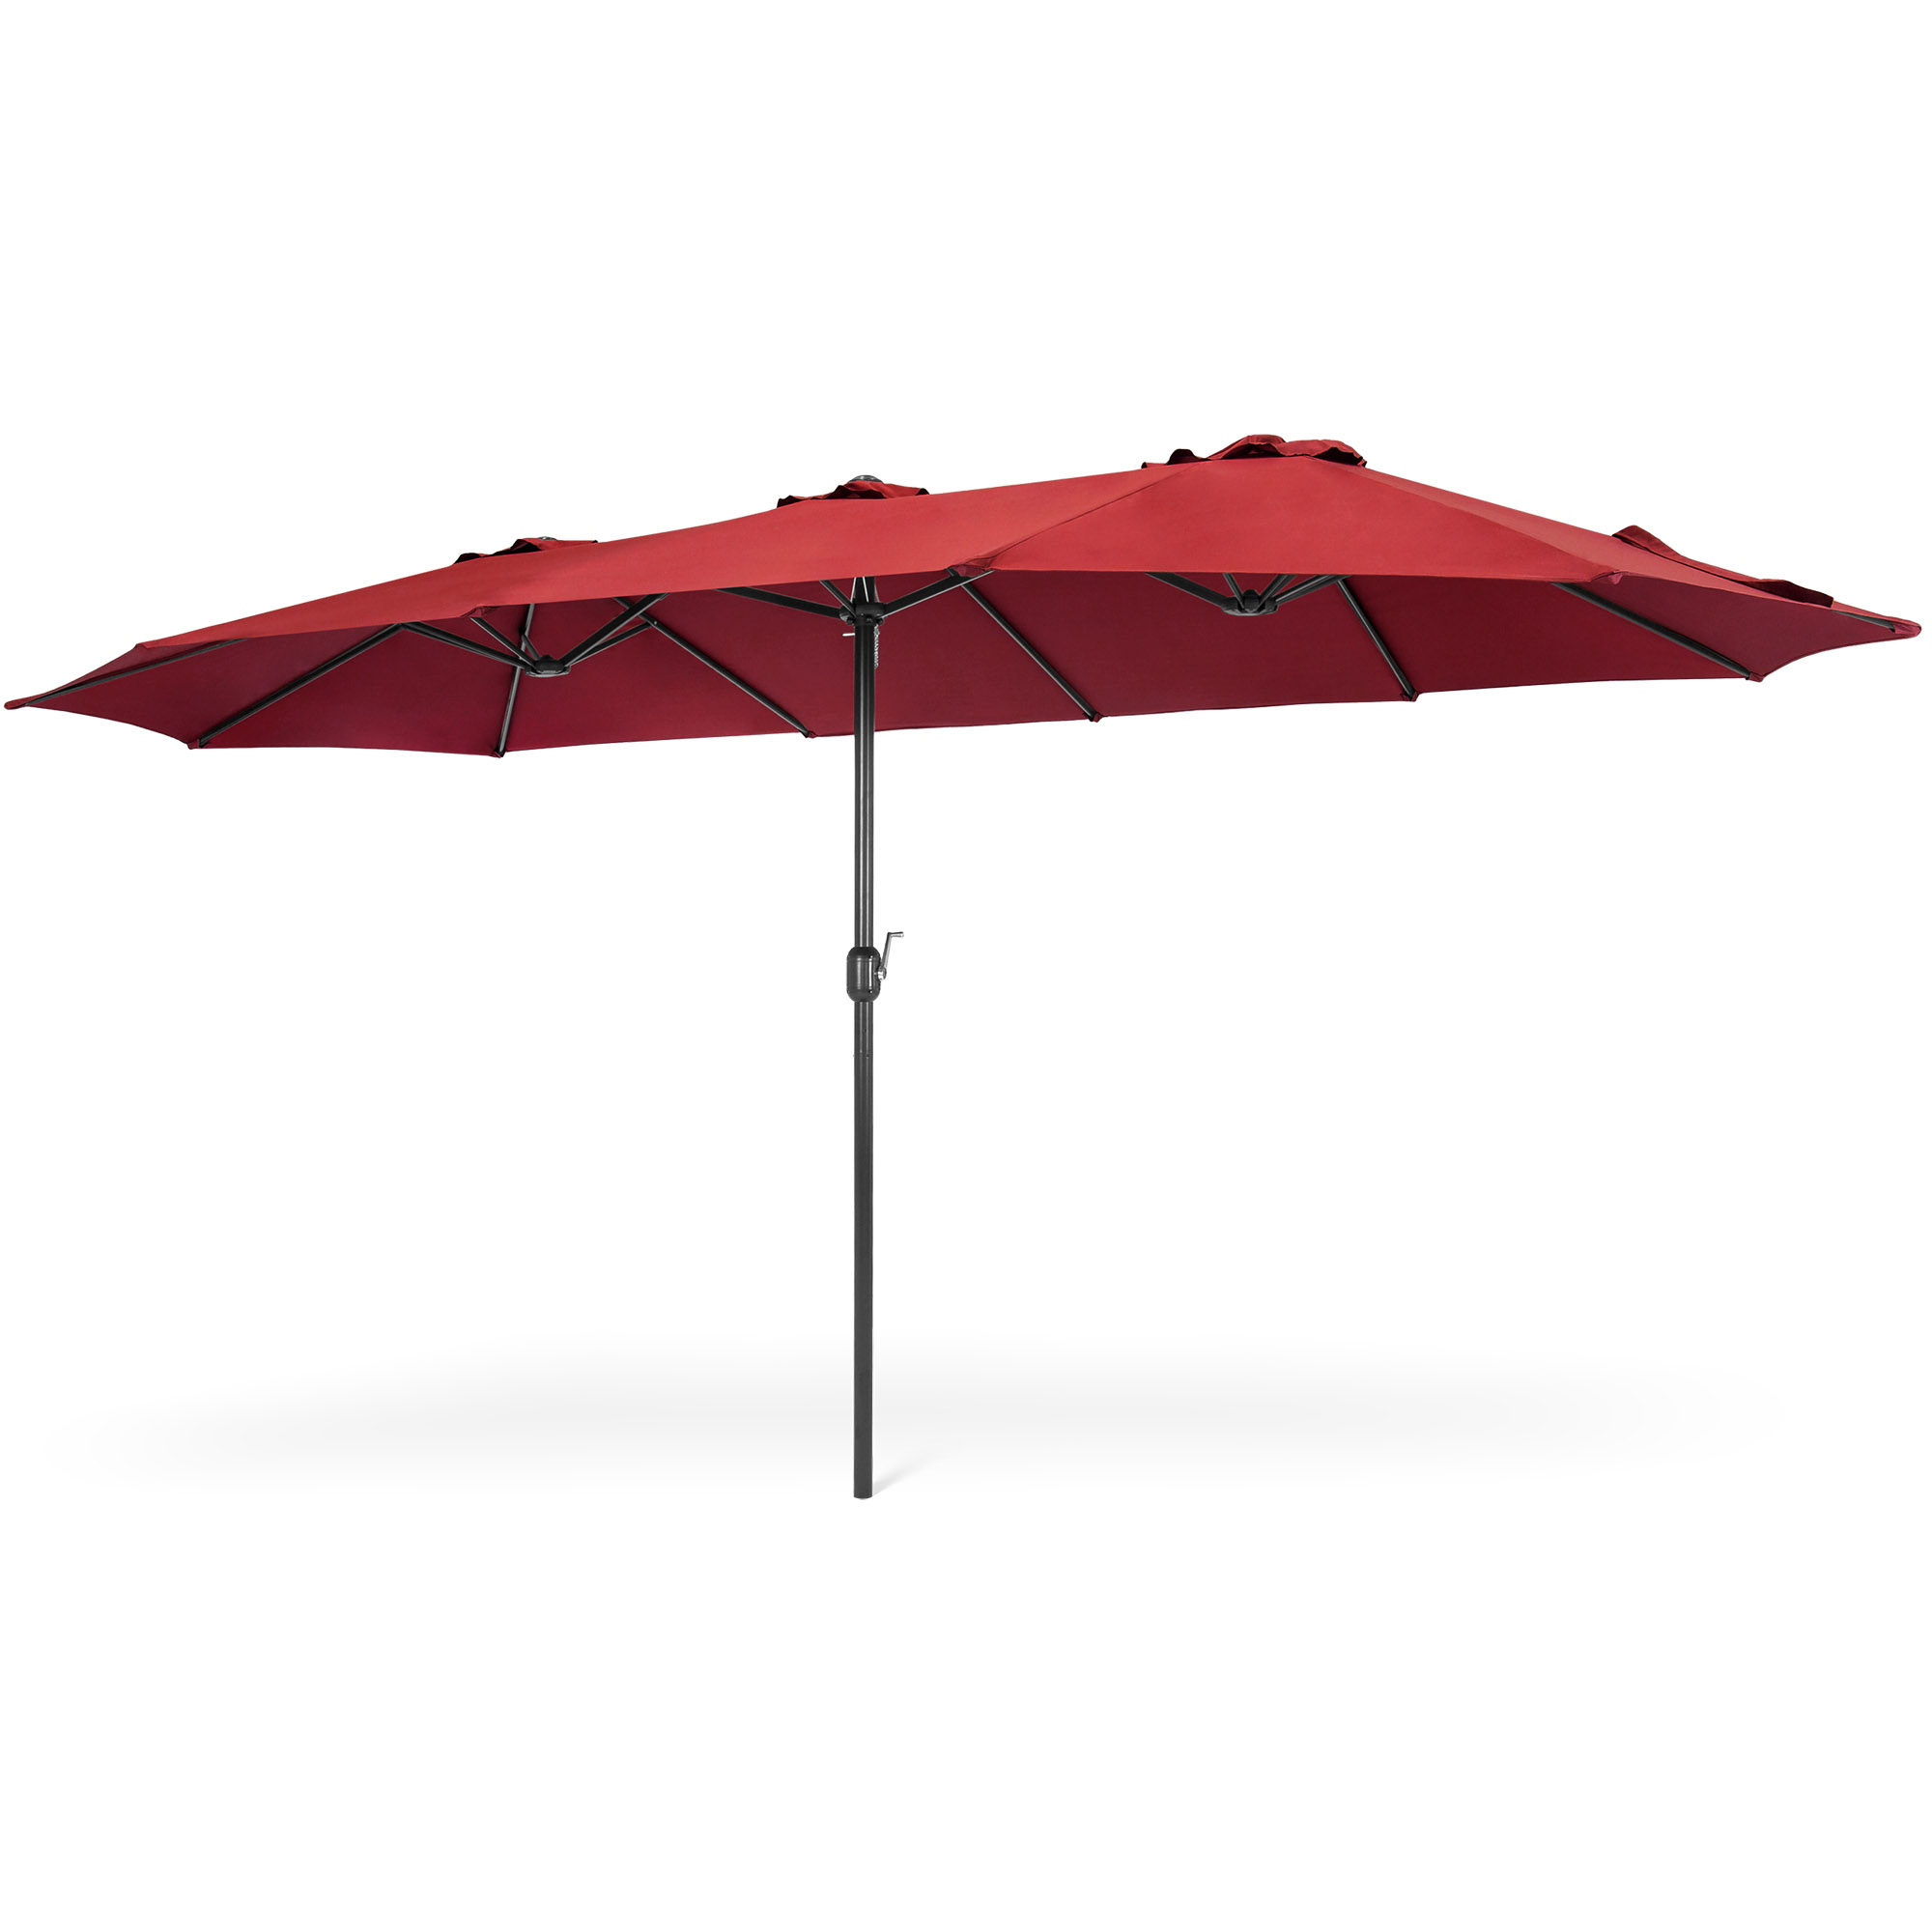 2019 Solid Rectangular Market Umbrellas With Regard To Best Choice Products 15X9Ft Large Rectangular Outdoor Aluminum Twin Patio Market Umbrella W/ Crank, Wind Vents (Gallery 19 of 20)